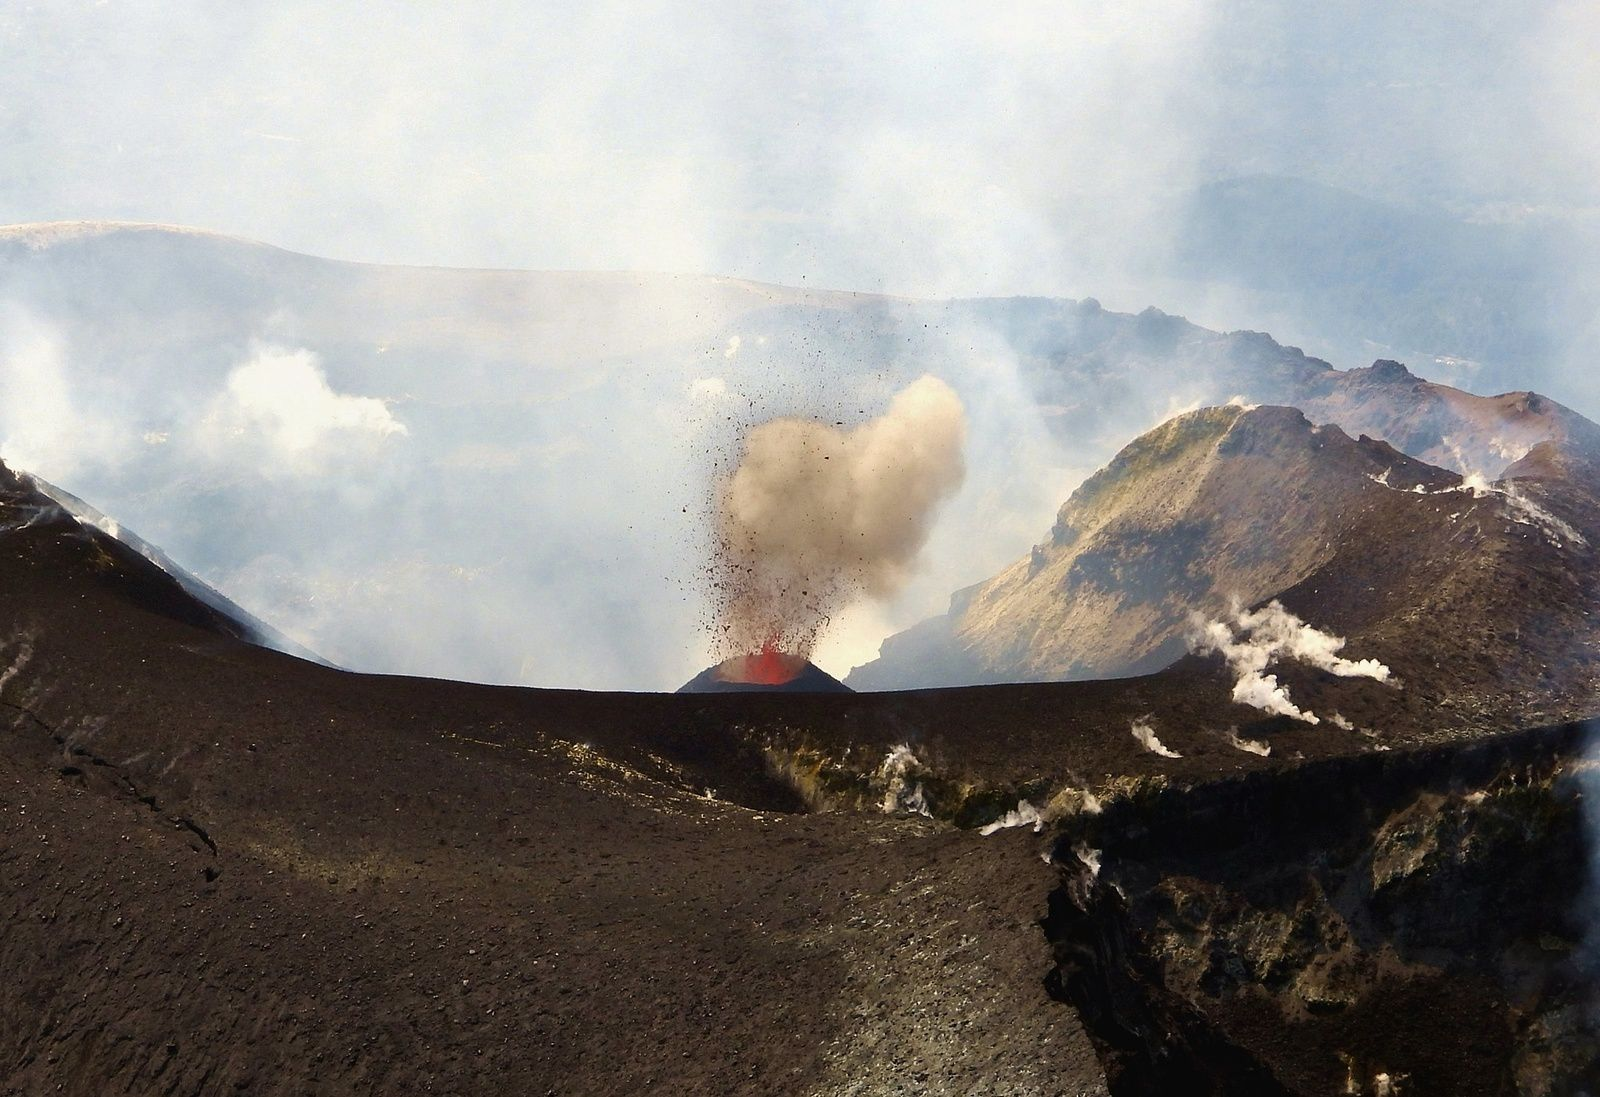 Etna - The new scoria cone in the Voragine crater, seen by helicopter on the afternoon of September 15, 2019. In the foreground, on the right, we can see part of the Northeast crater; in the background, the ridge of the southern edge of the crater of Bocca Nuova. - photo Boris Behncke / via INGVvulcani